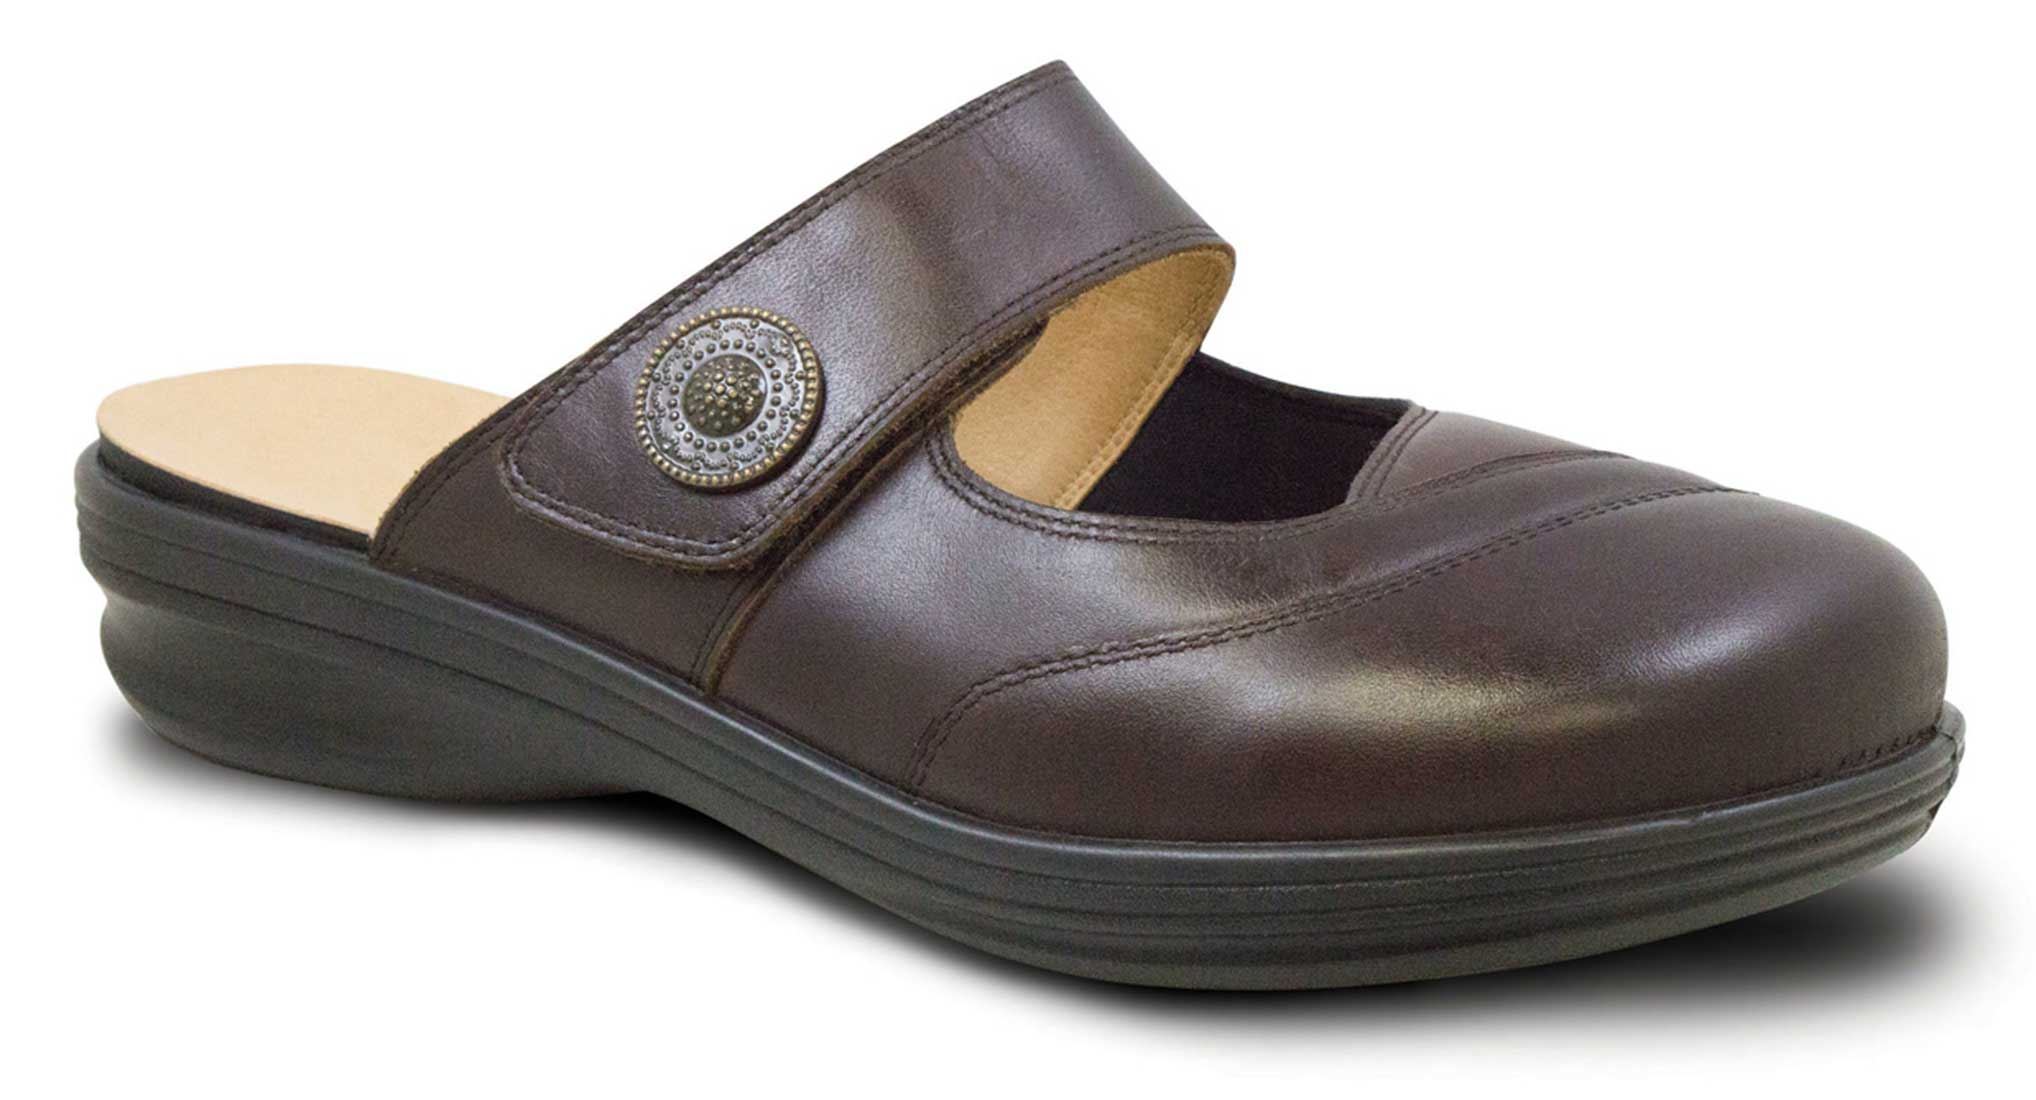 Revere - Brussels - Chocolate - Womens Sandal